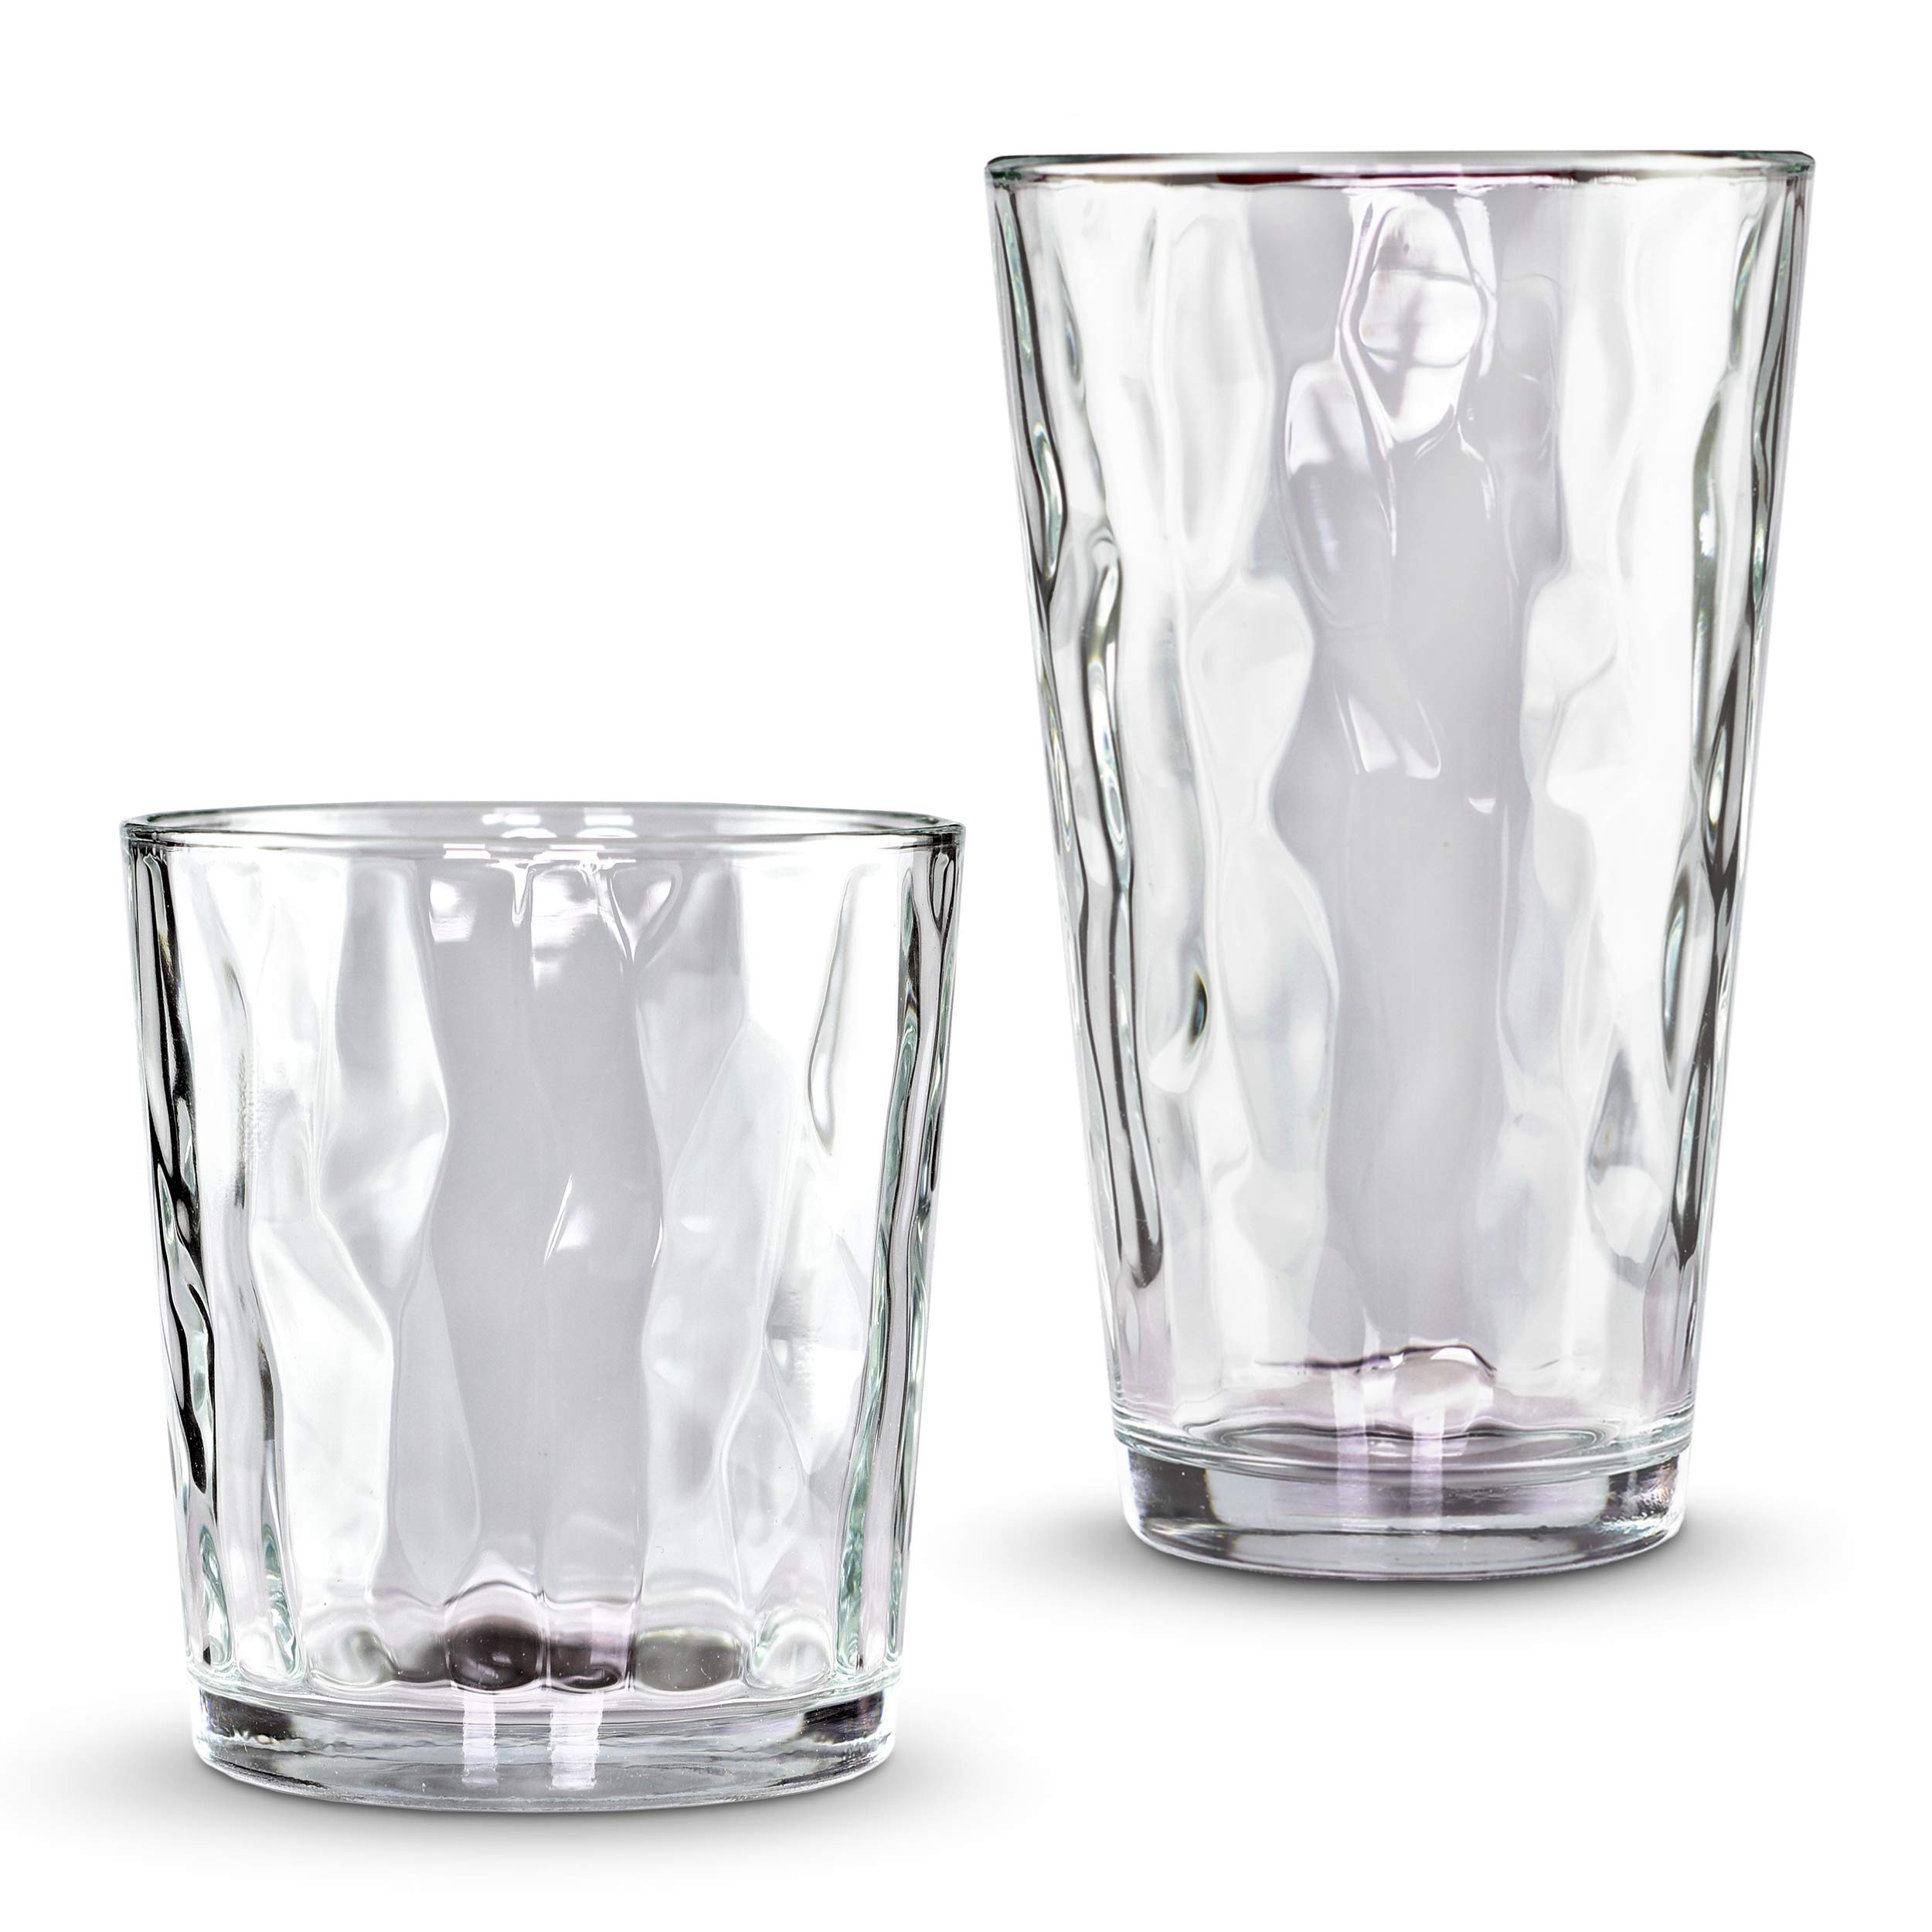 Emenest Clear Drinking Glasses (Set of 16) | Real Glassware with Heavy Base | 8 Highball and 8 Double Old Fashioned Drinkware | Mixed Tumbler Set For Water, Whiskey, Cocktails | Best Kitchen Gift